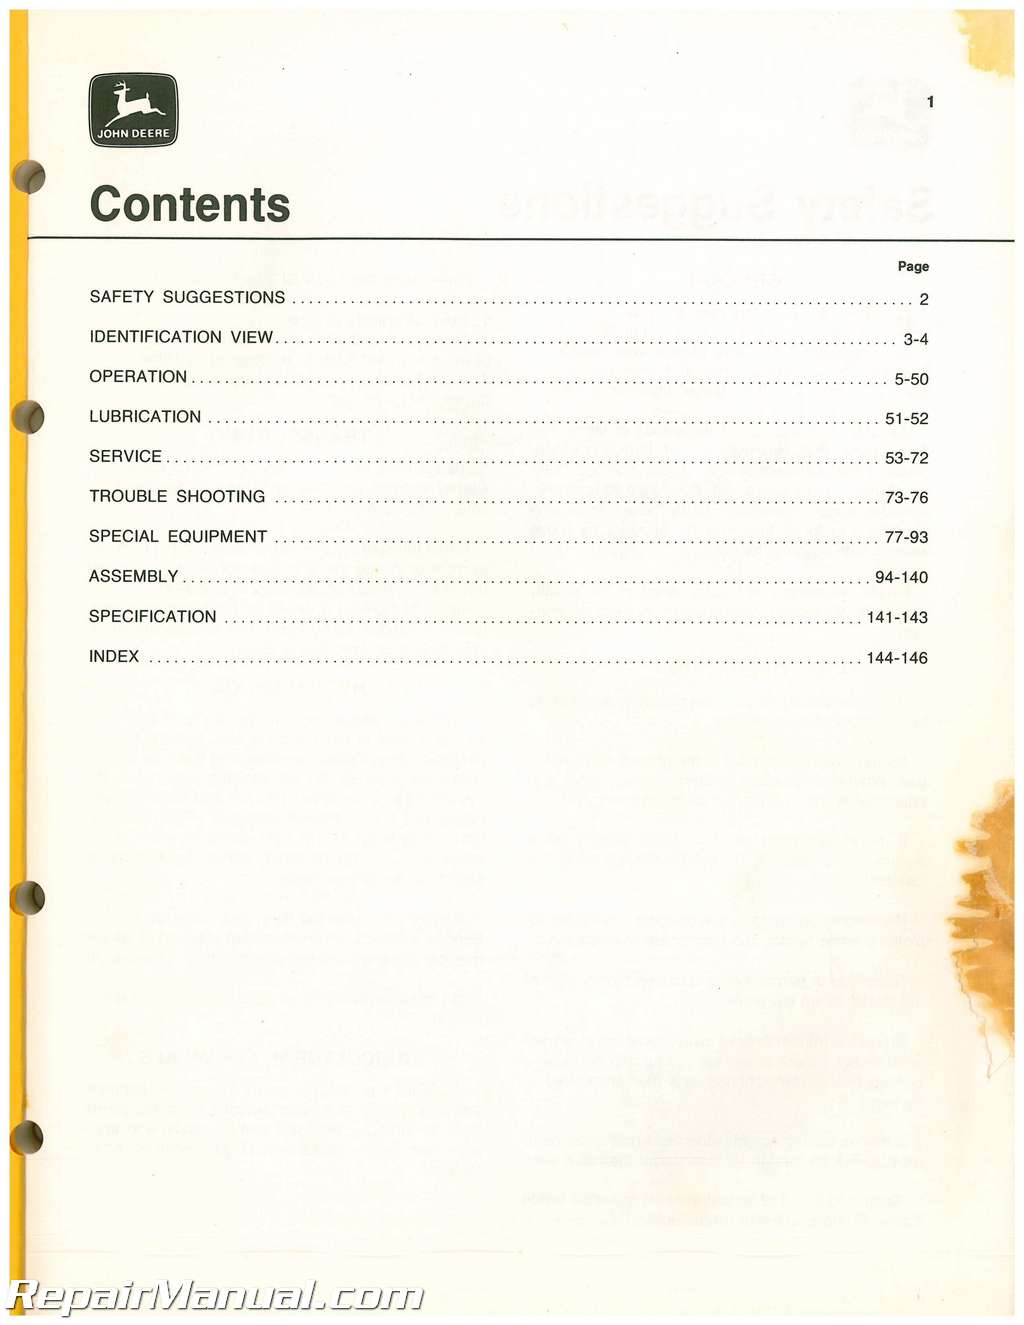 John Deere 7000 Planter Manual Pdf